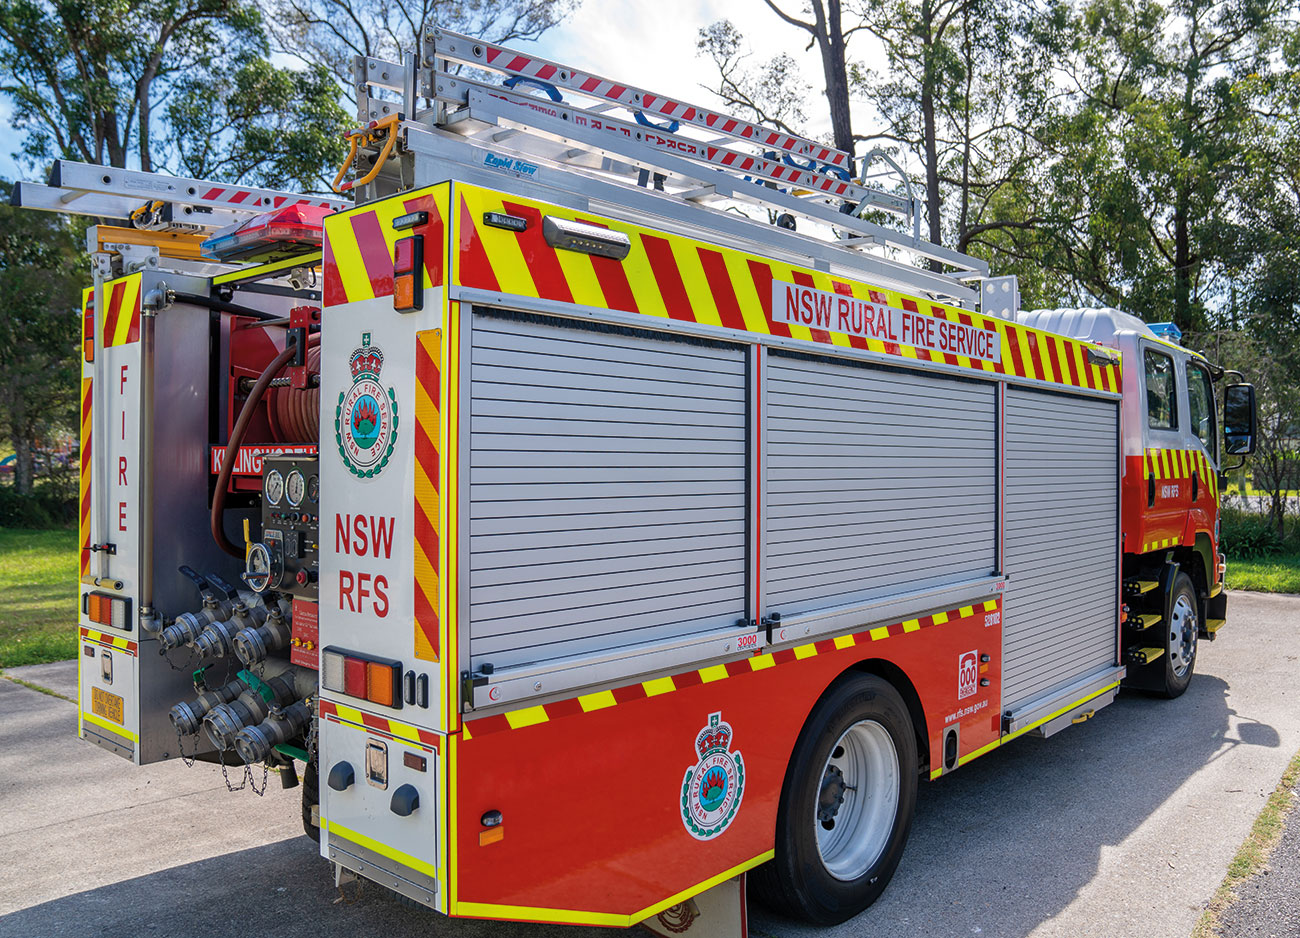 NSW Rural Fire Service Appliance fitted with Centurion3000 Vehicle Roller Doors, ARION 9.2m Double Extension Rescue Ladder with RapidStow MAX equipment gantry and an ARION 4.5m Folding Roof Ladder with RapidStow equipment gantry.